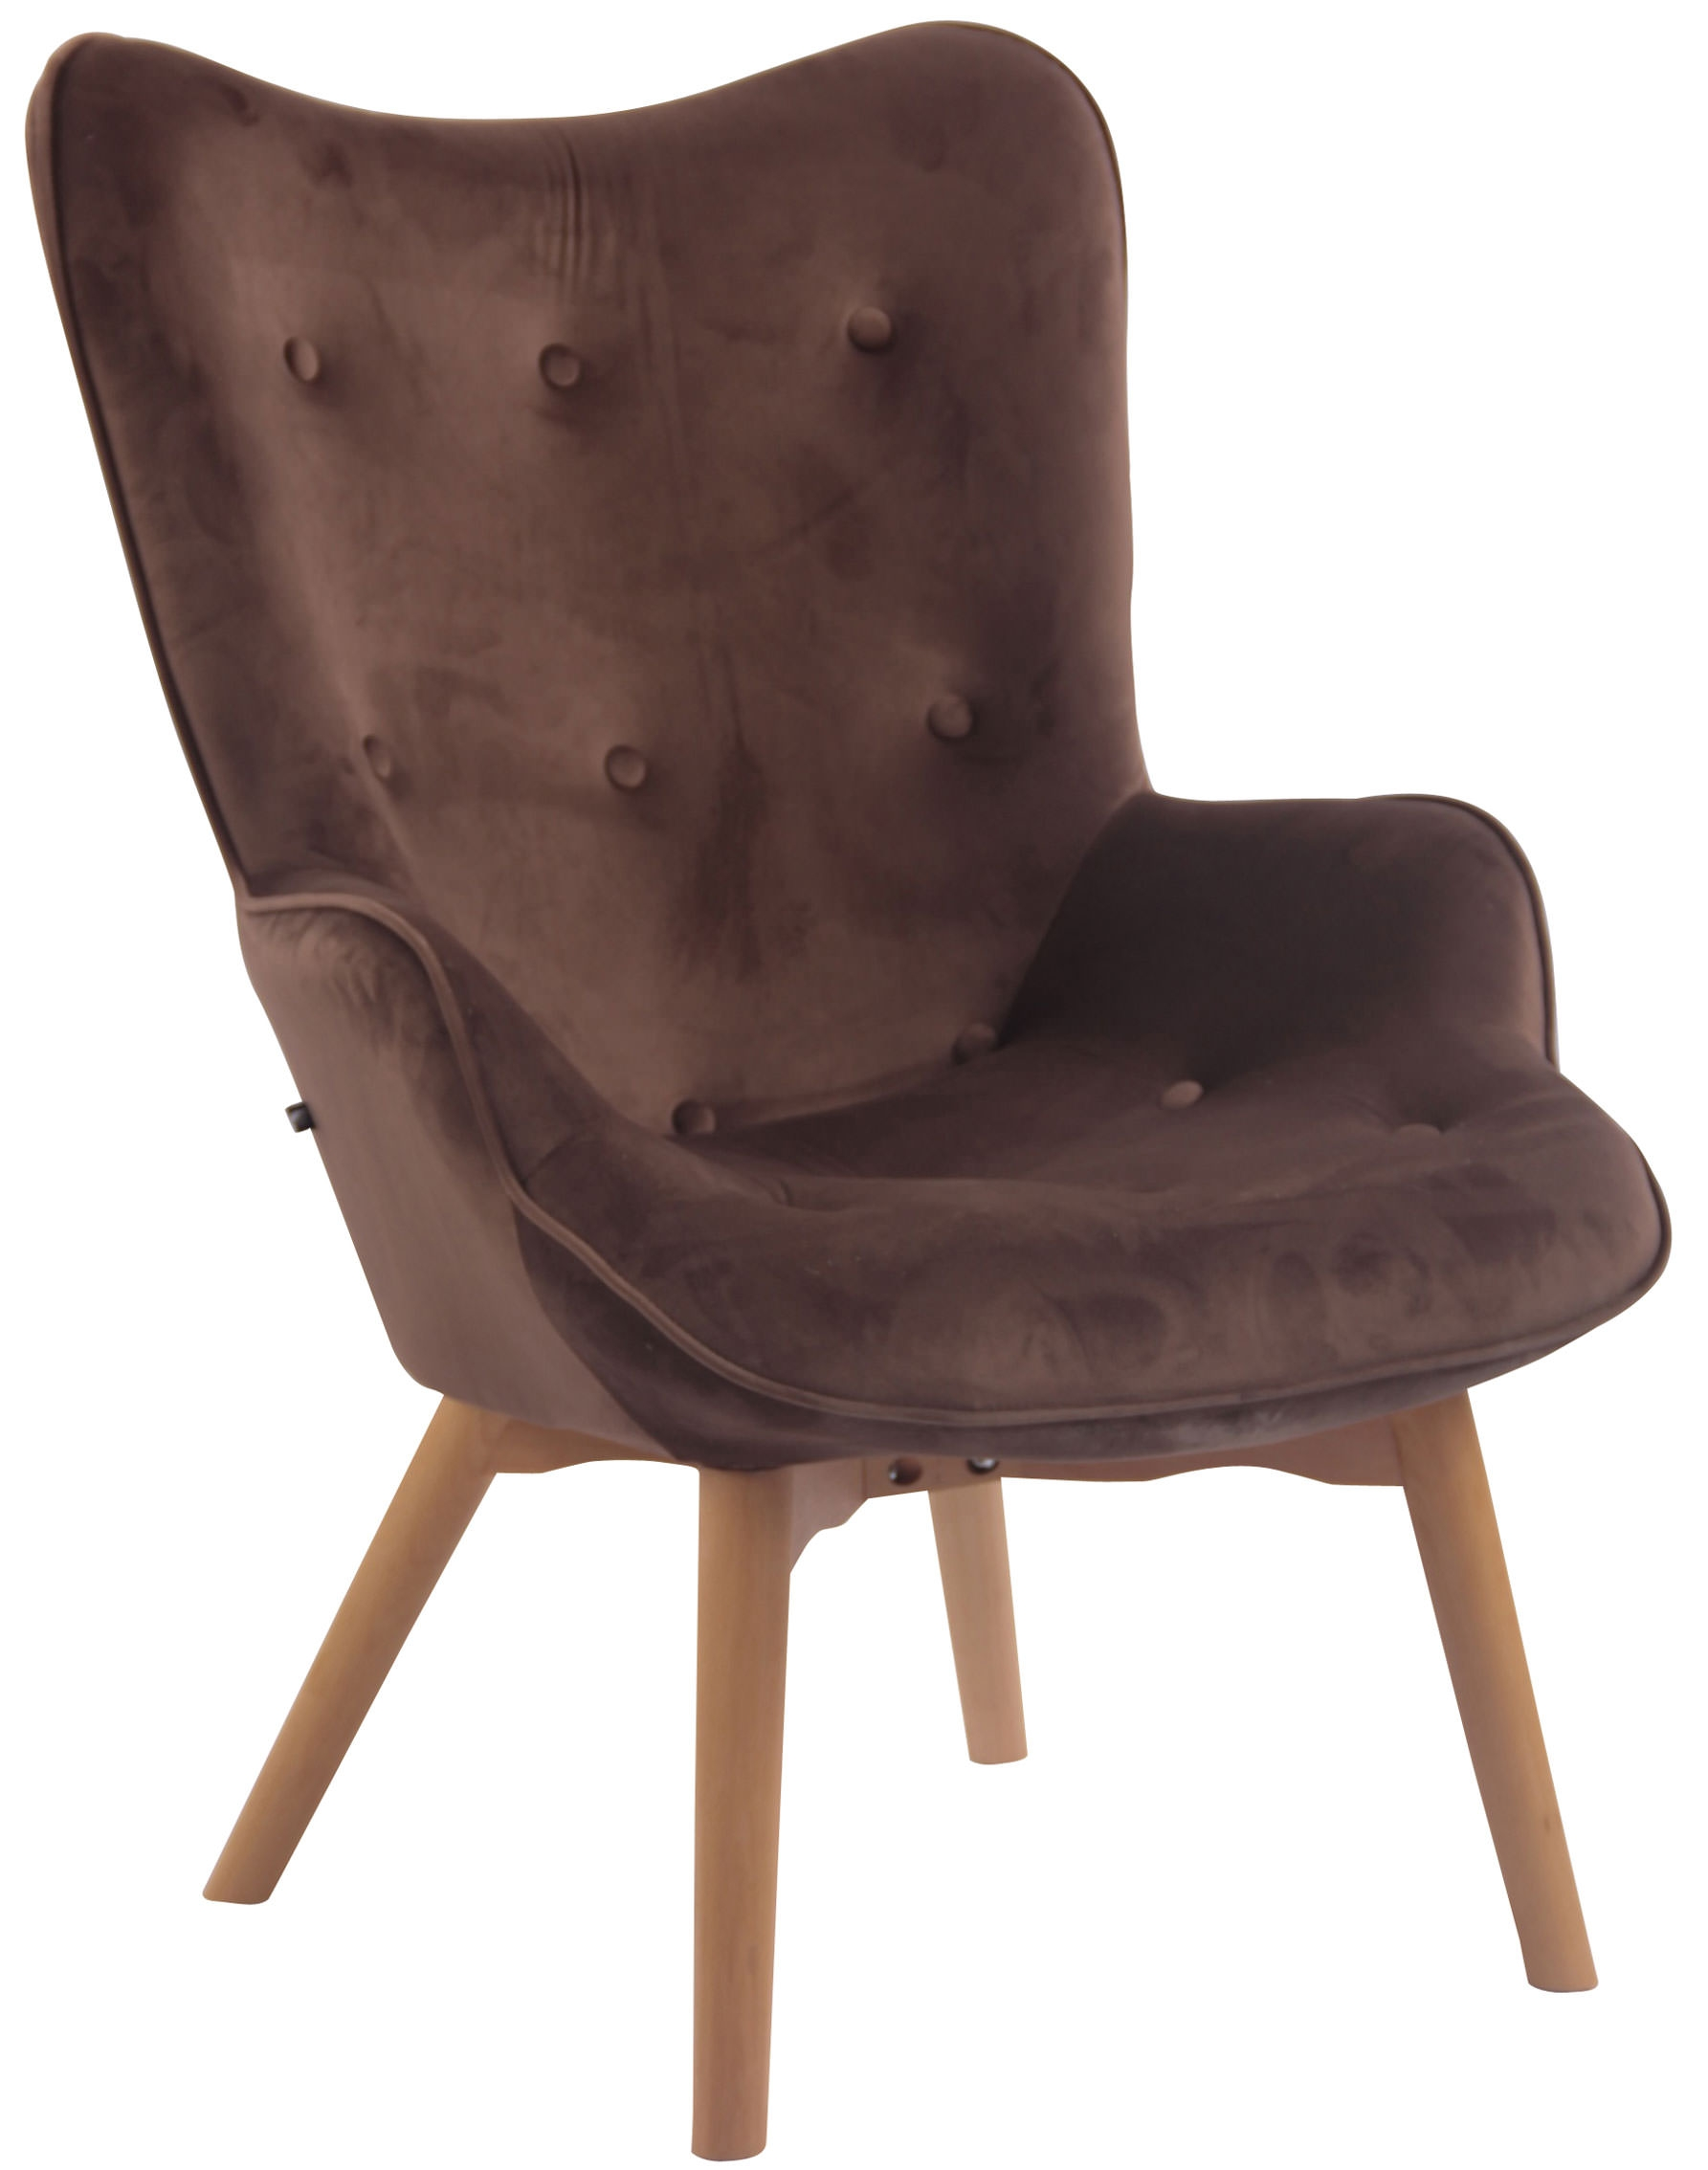 Lounge Sessel Stoff Lounger Duke Stoff Loungesessel Sessel Wohn Esszimmer Bad